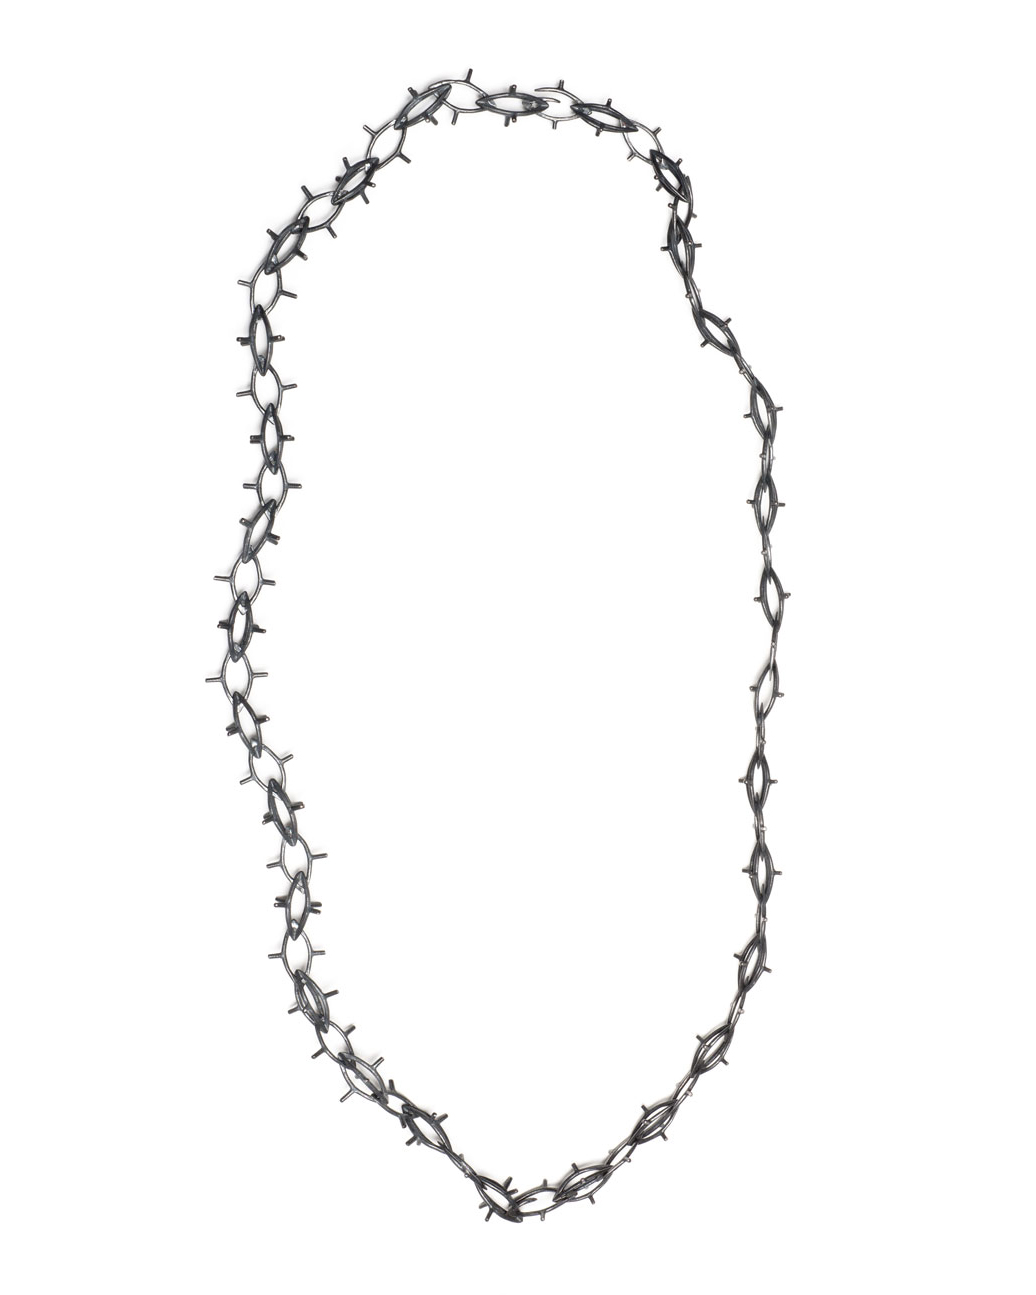 Winfried Krüger, untitled, 1997, necklace, ring; oxidised silver, stones, 150 x 150 mm, 50 x 25 mm, €1940 (image 1 of 2 - necklace)